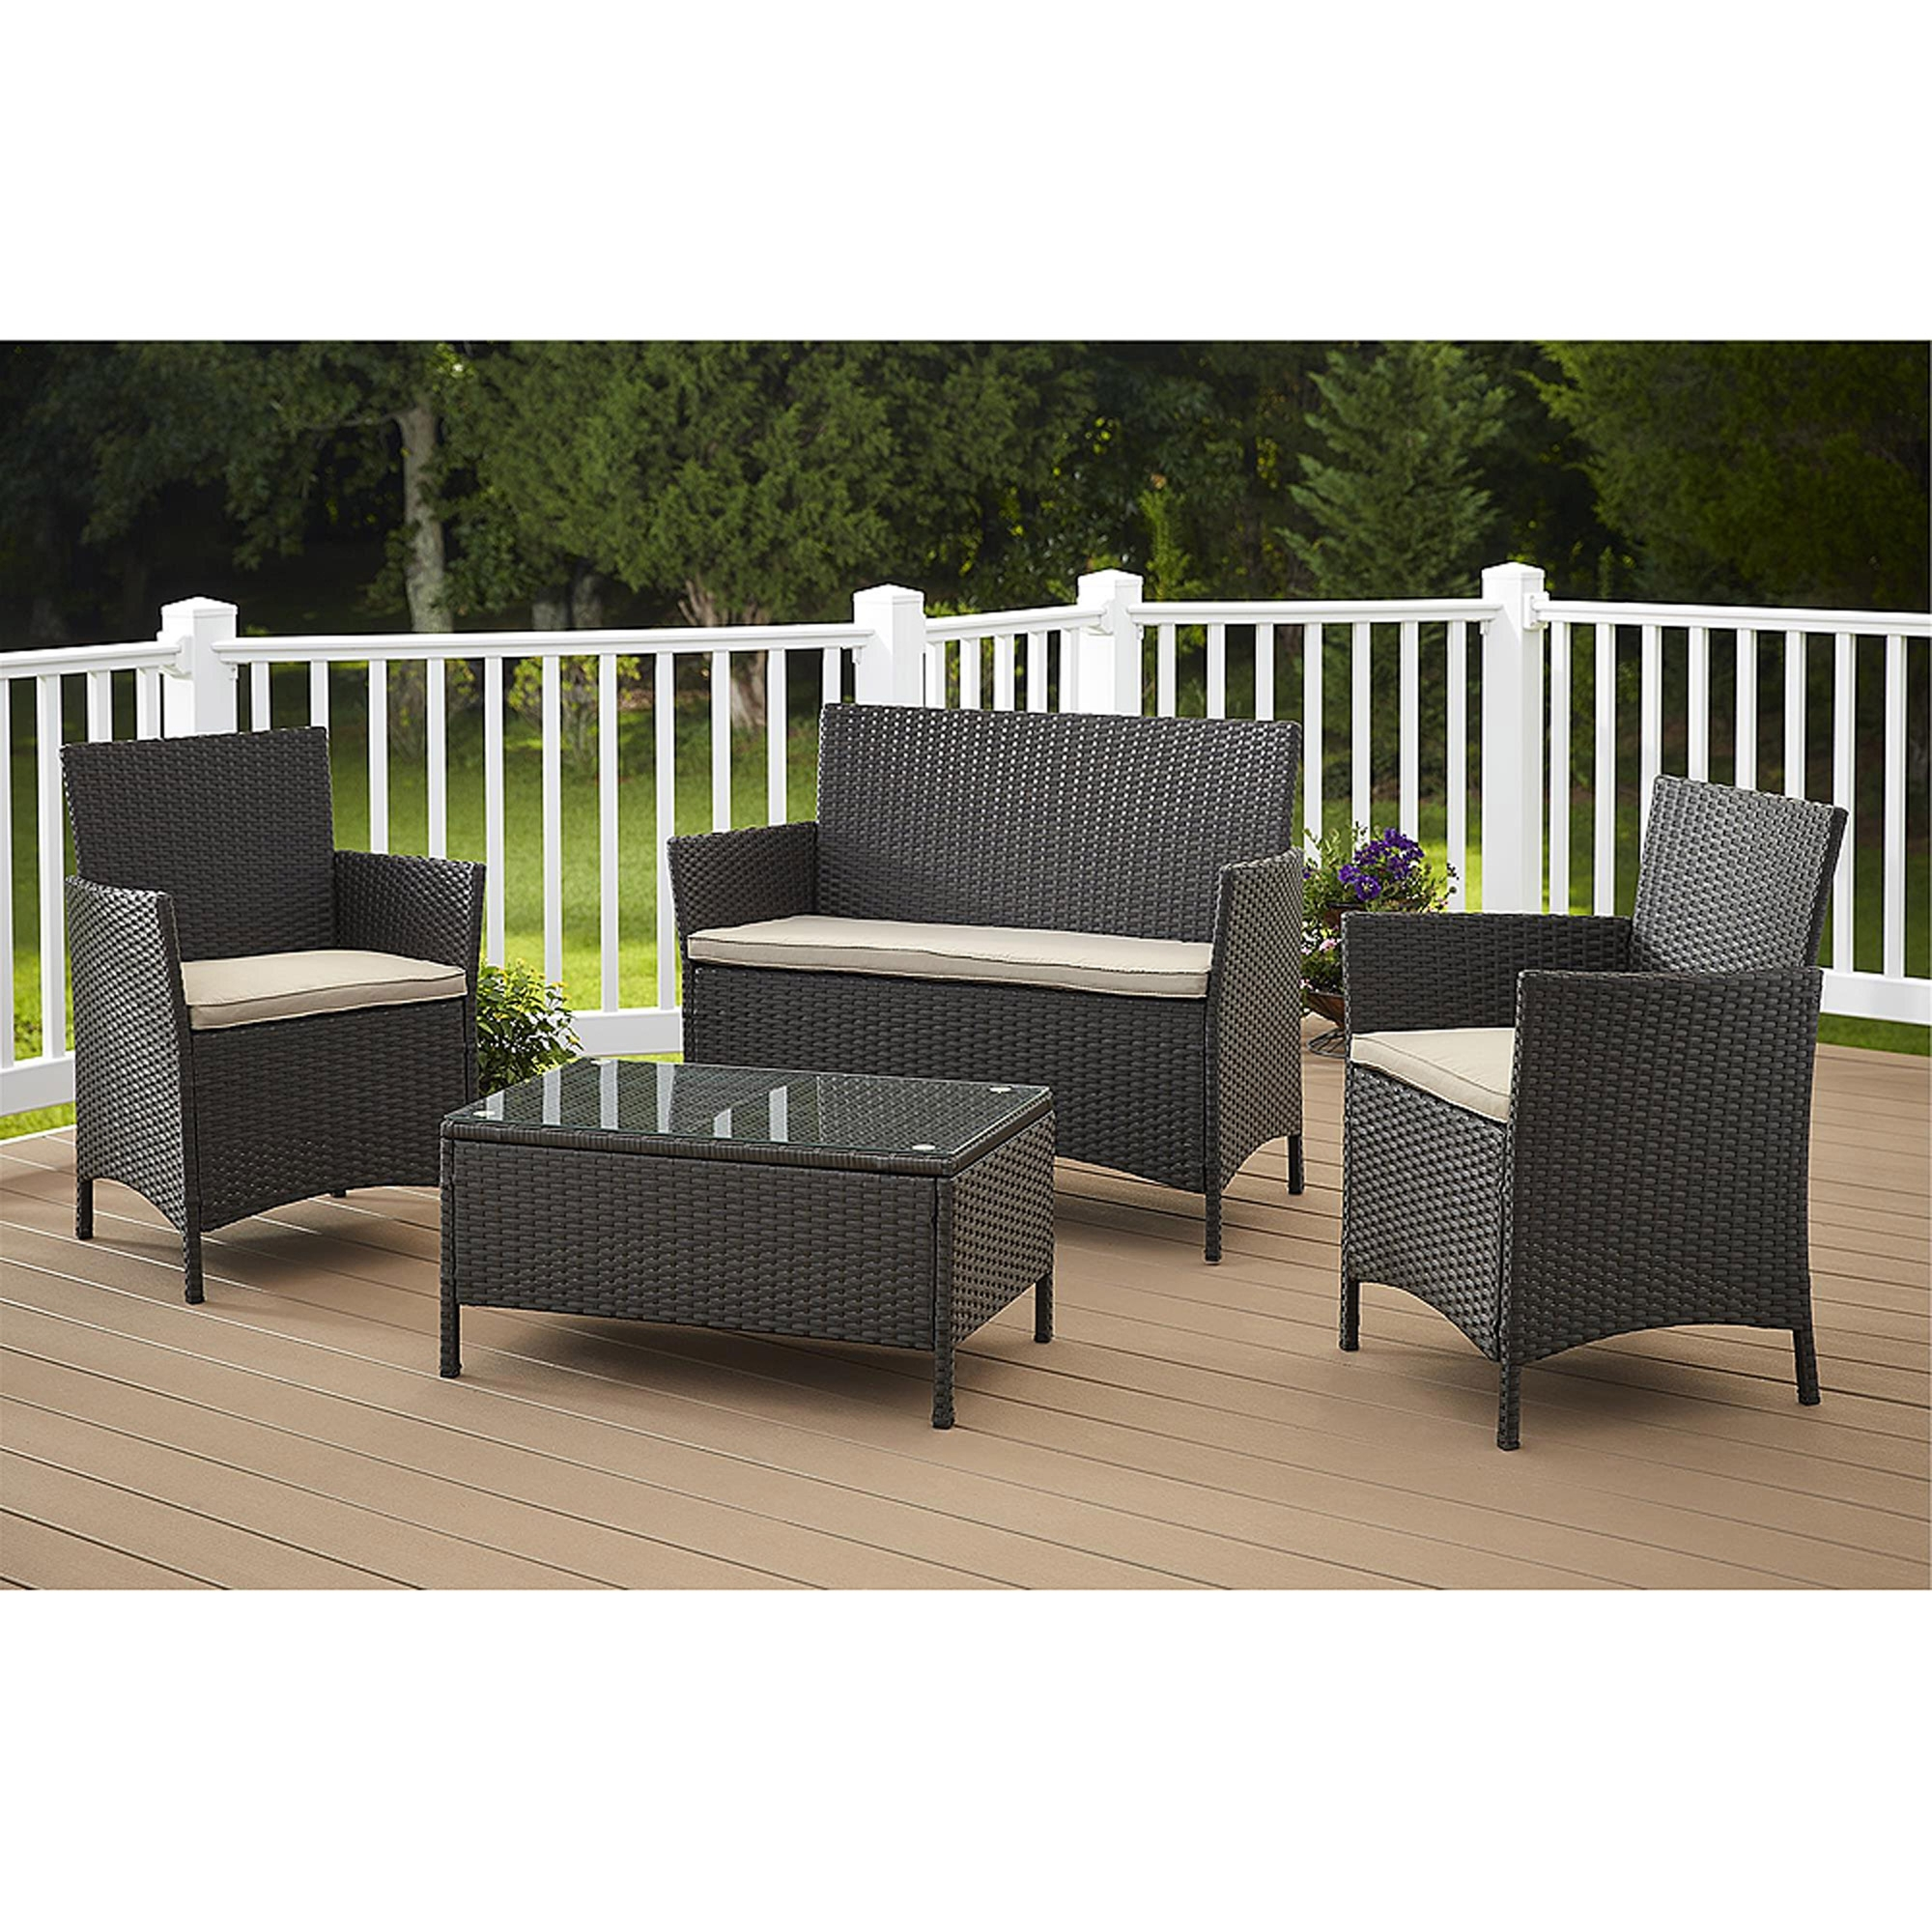 Newest Cosco Outdoor Furniture Jamaica 4 Piece Resin Wicker Patio Furniture Intended For Wicker 4Pc Patio Conversation Sets With Navy Cushions (View 10 of 15)